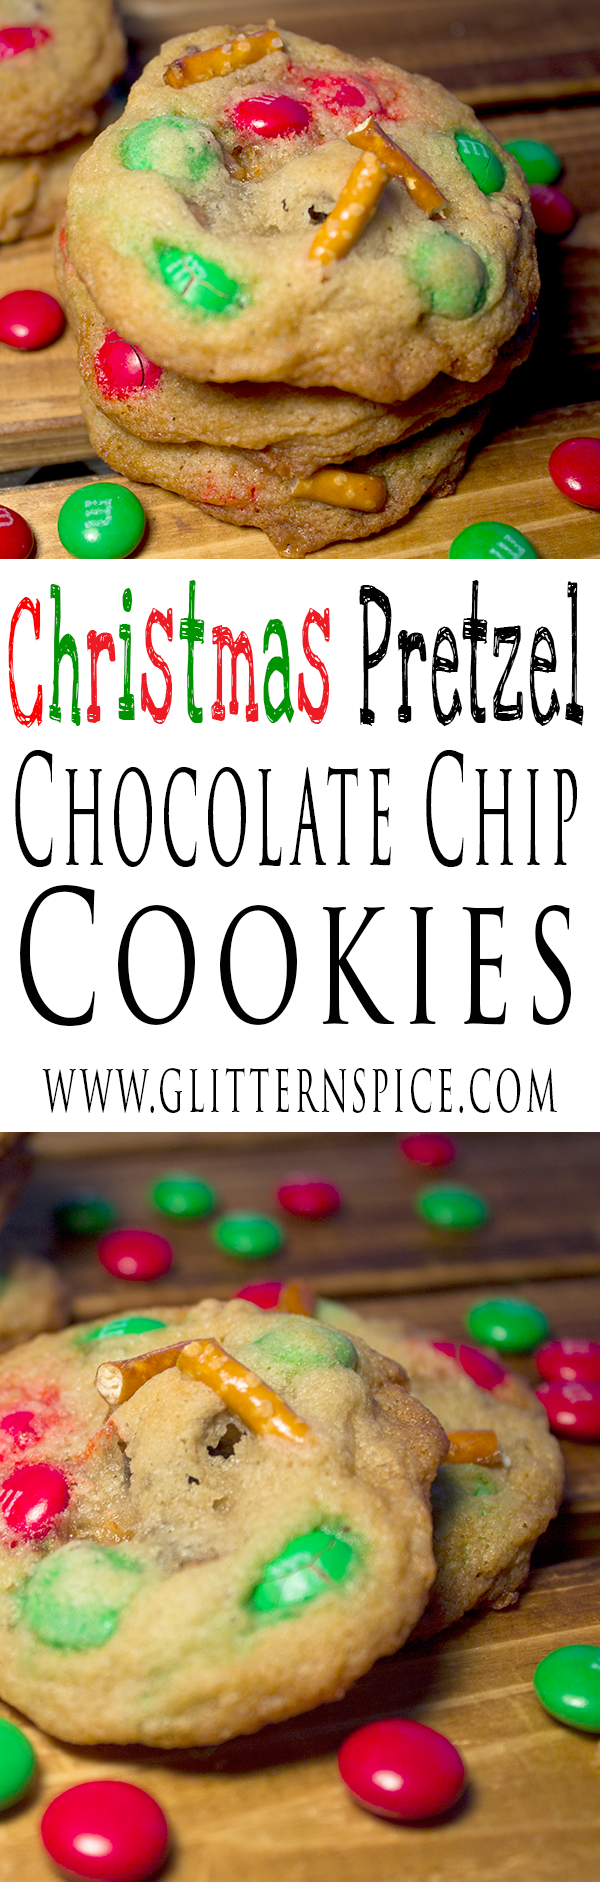 Christmas Pretzel Chocolate Chip Cookies